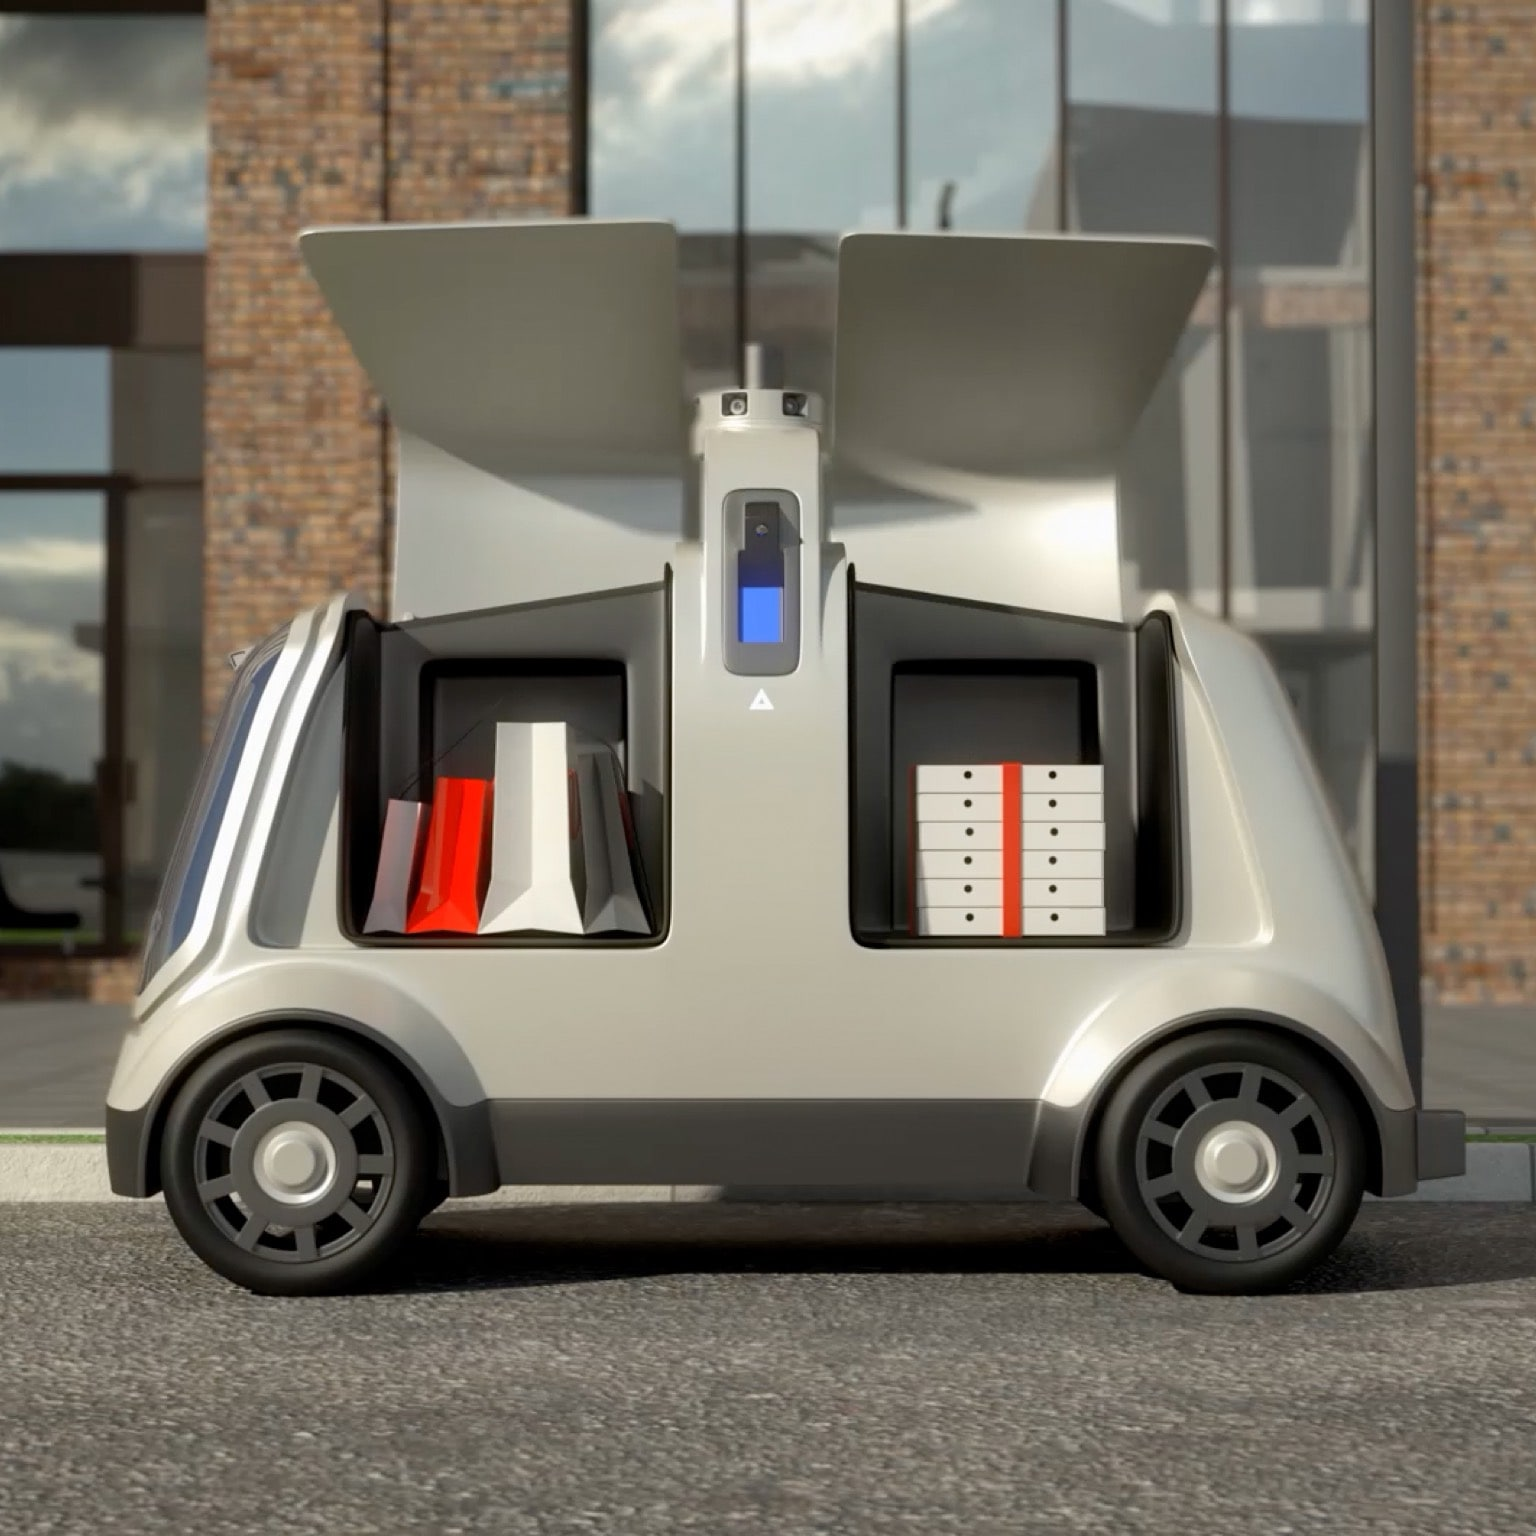 Electric vehicle delivering packages